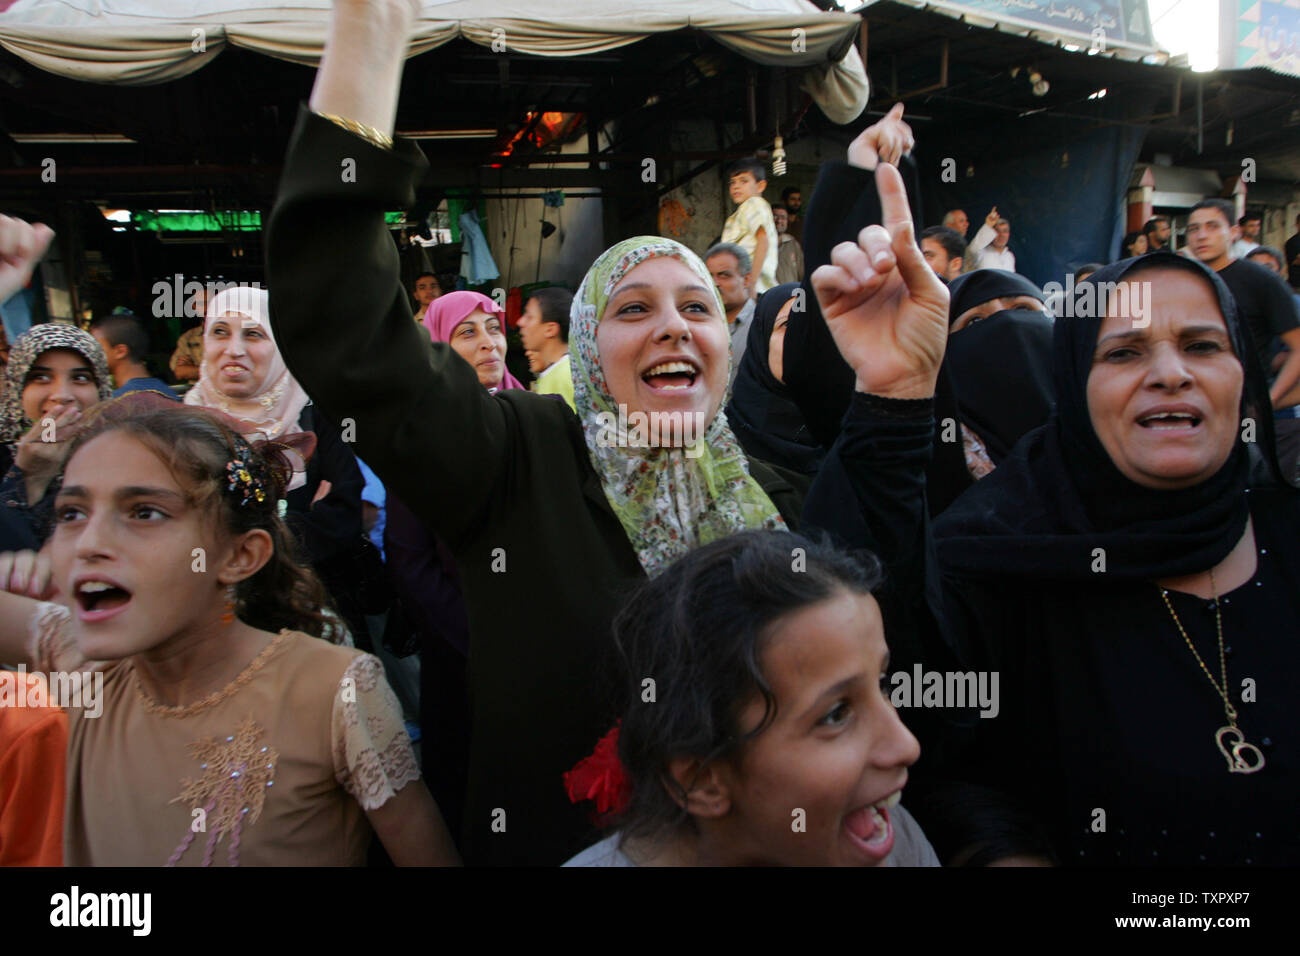 Palestinian women supporters of Hamas shout as militants from the Islamic group Hamas march past during a rally organized by the Hamas movement in Nuseirat, southern Gaza on October 17, 2008. (UPI Photo/Ismael Mohamad) - Stock Image